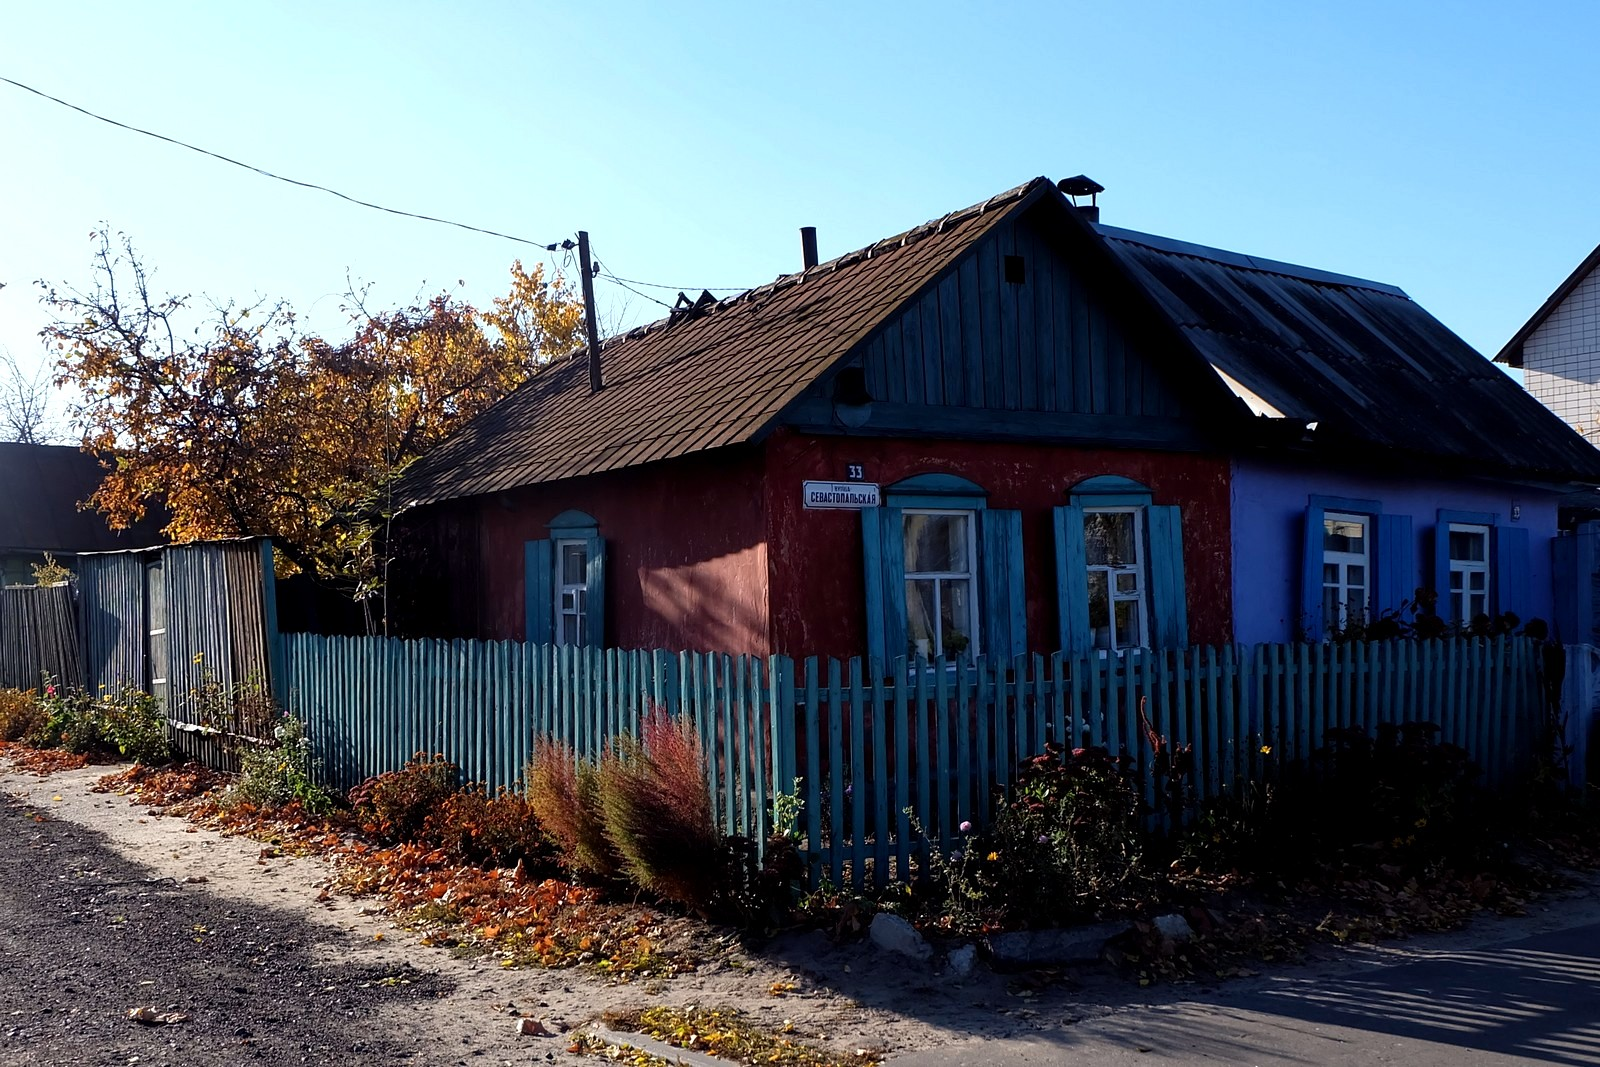 Gomel, Belarus | October 2o14